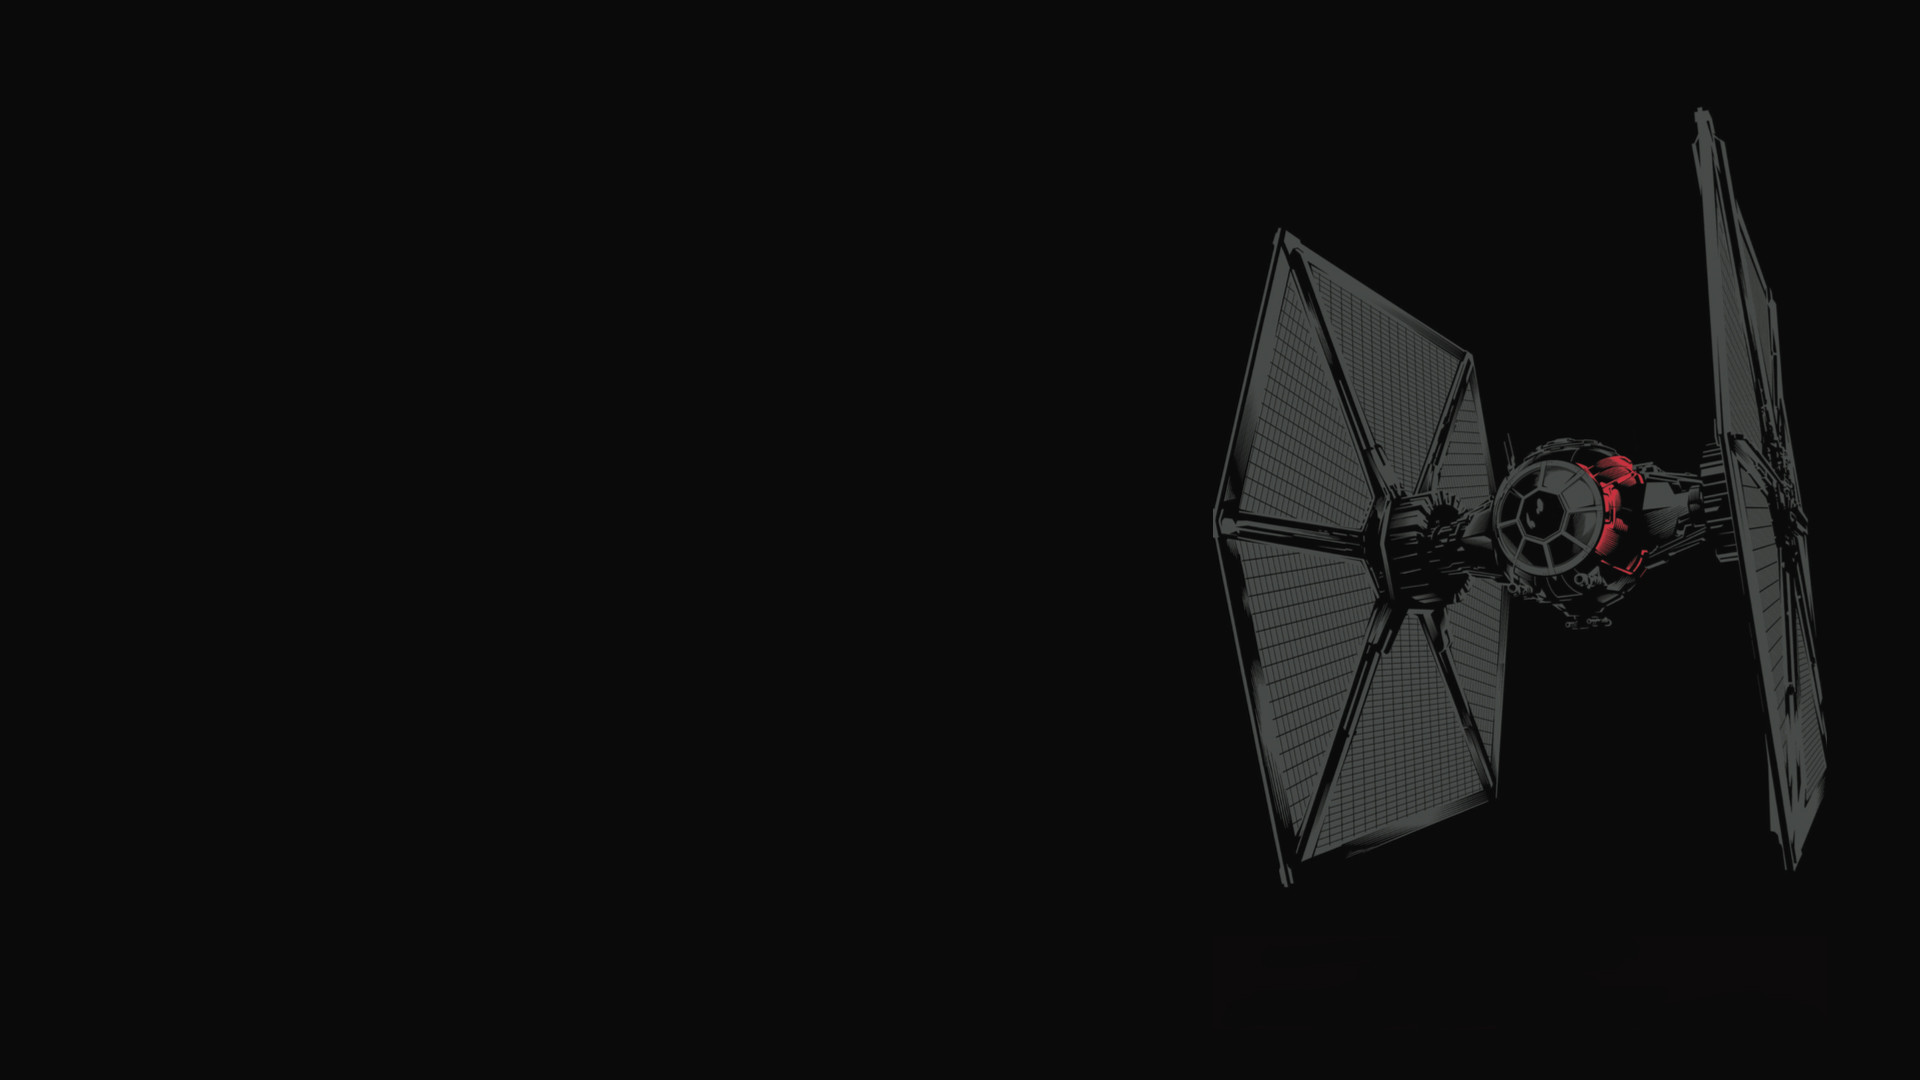 … STAR WARS ep.7 TIE FIGHTER – THE FIRST ORDER by tkasabov2